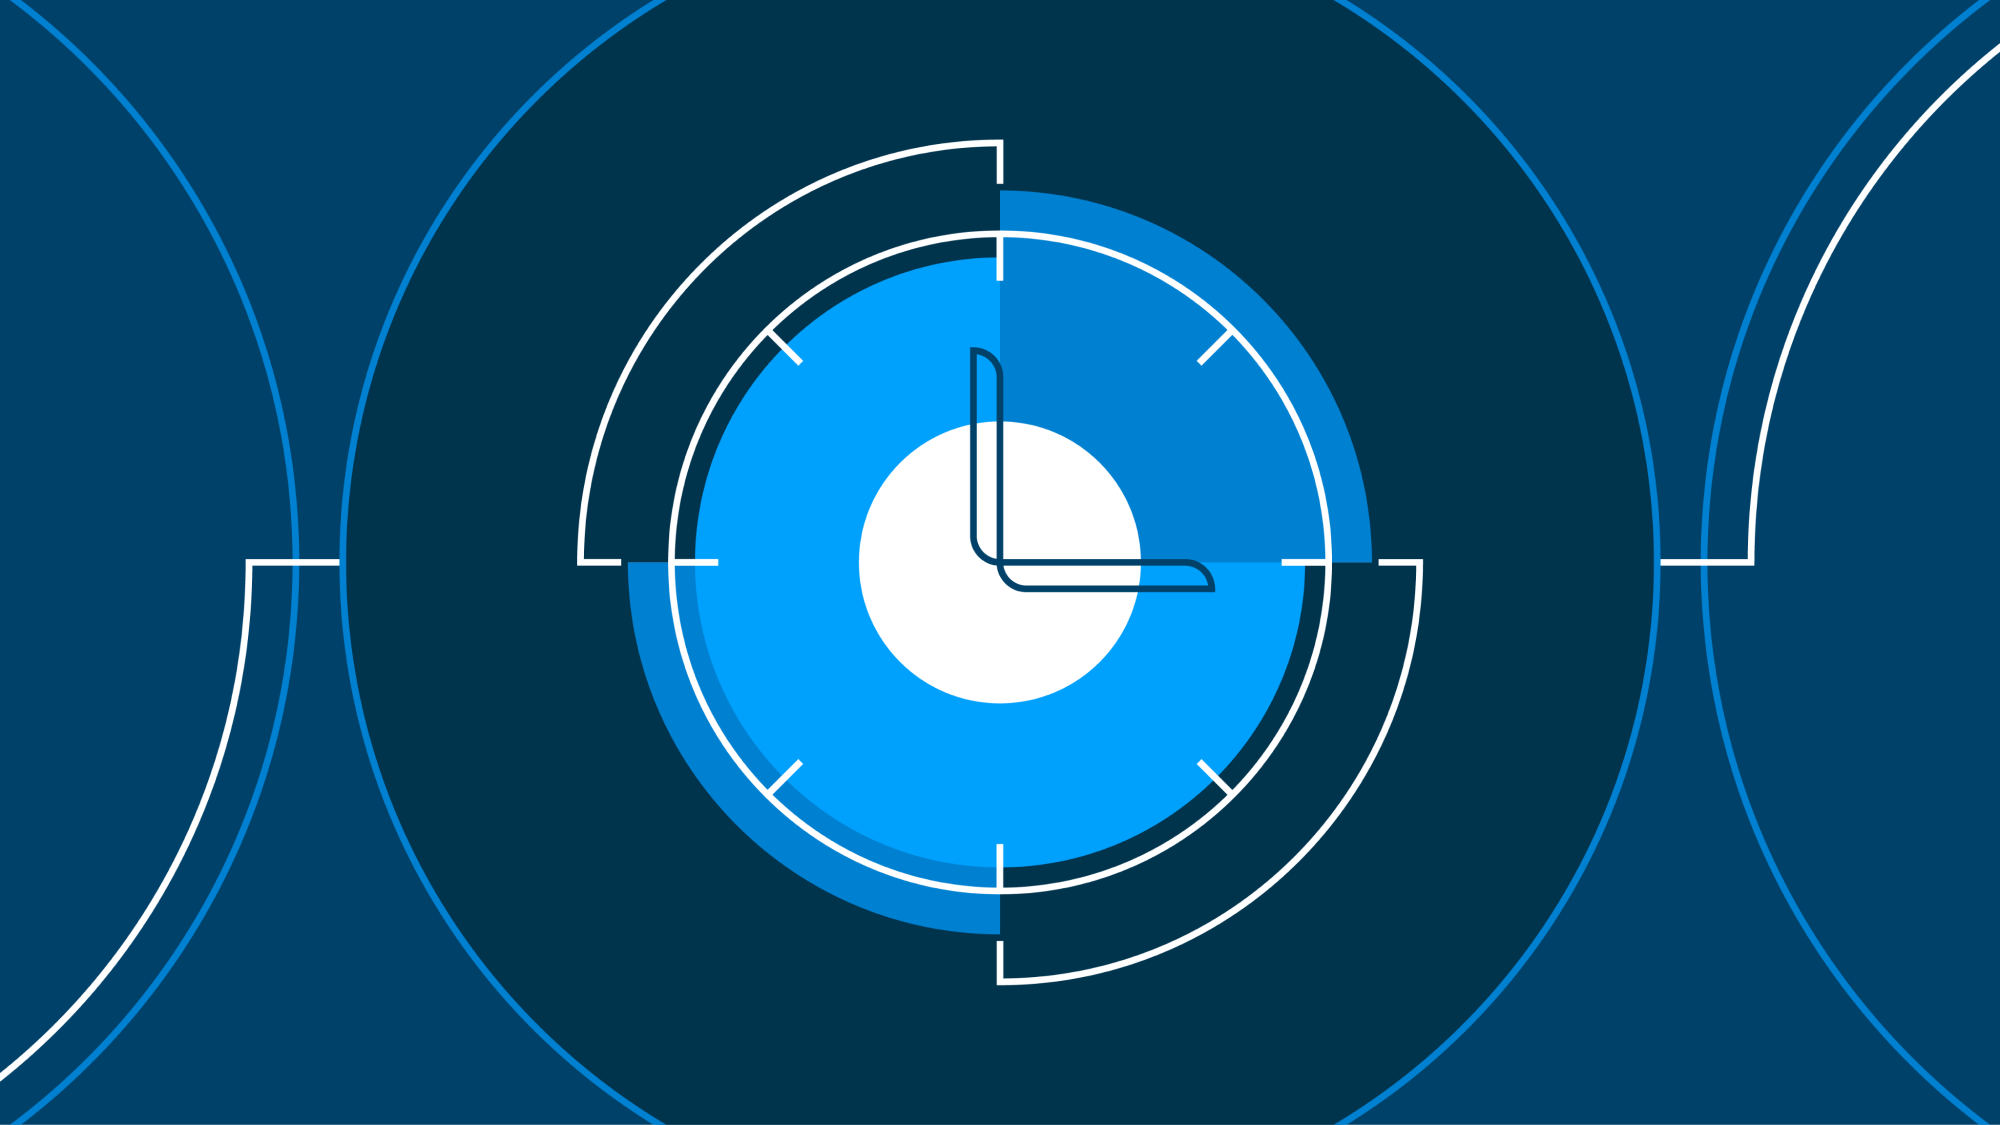 An illustration of a clock